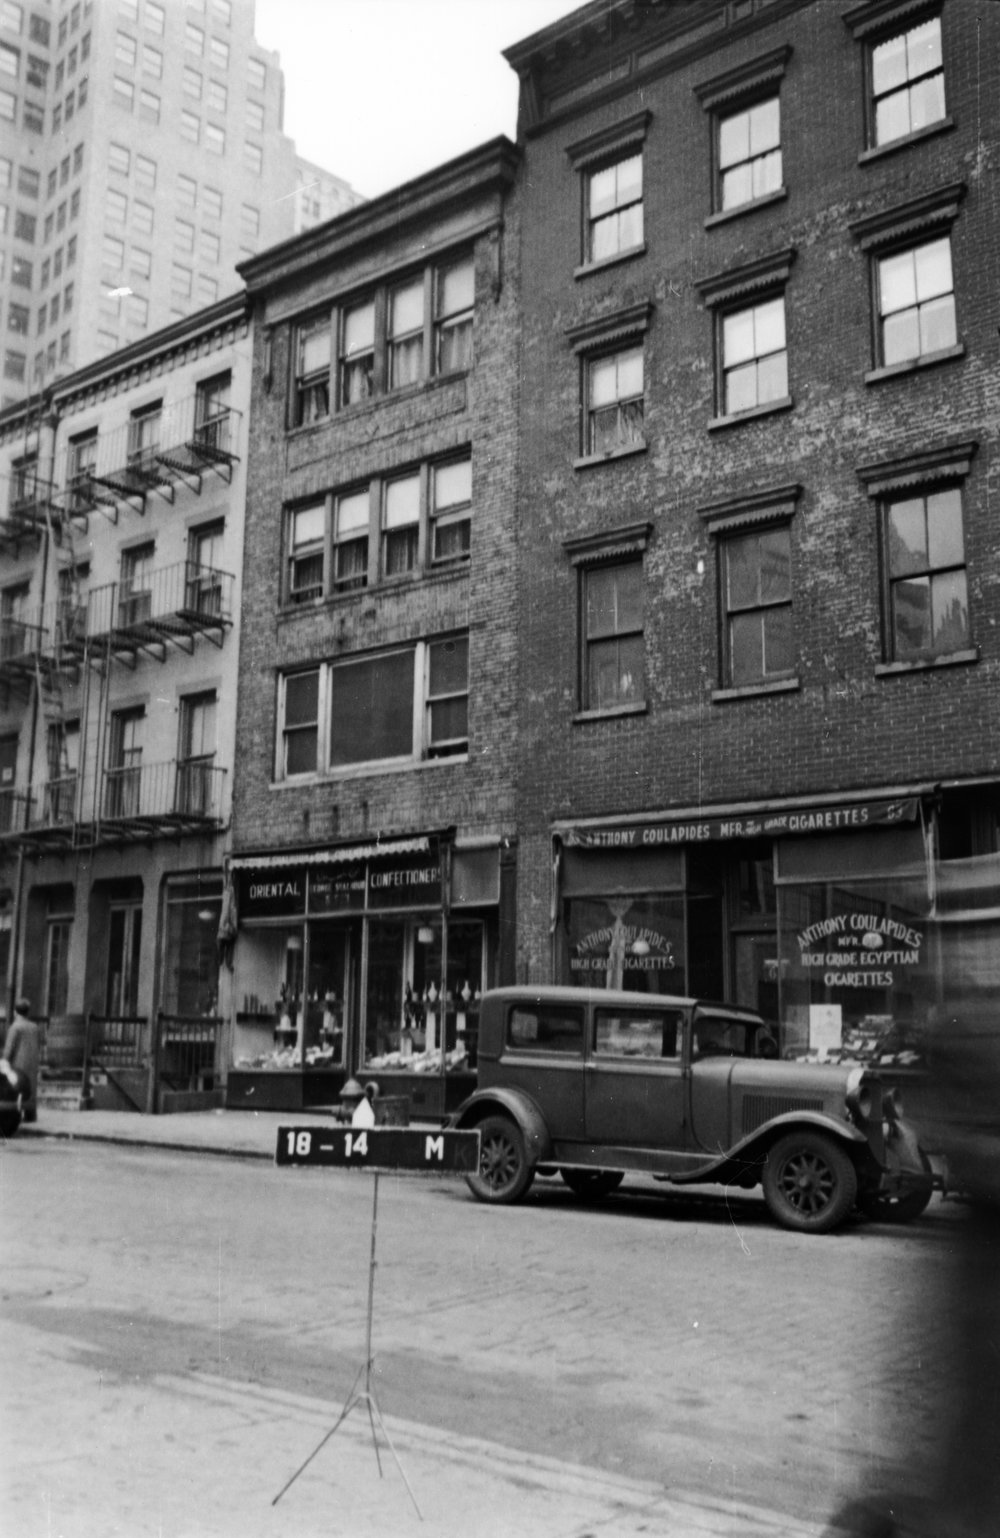 65 Washington Street, ca. 1939